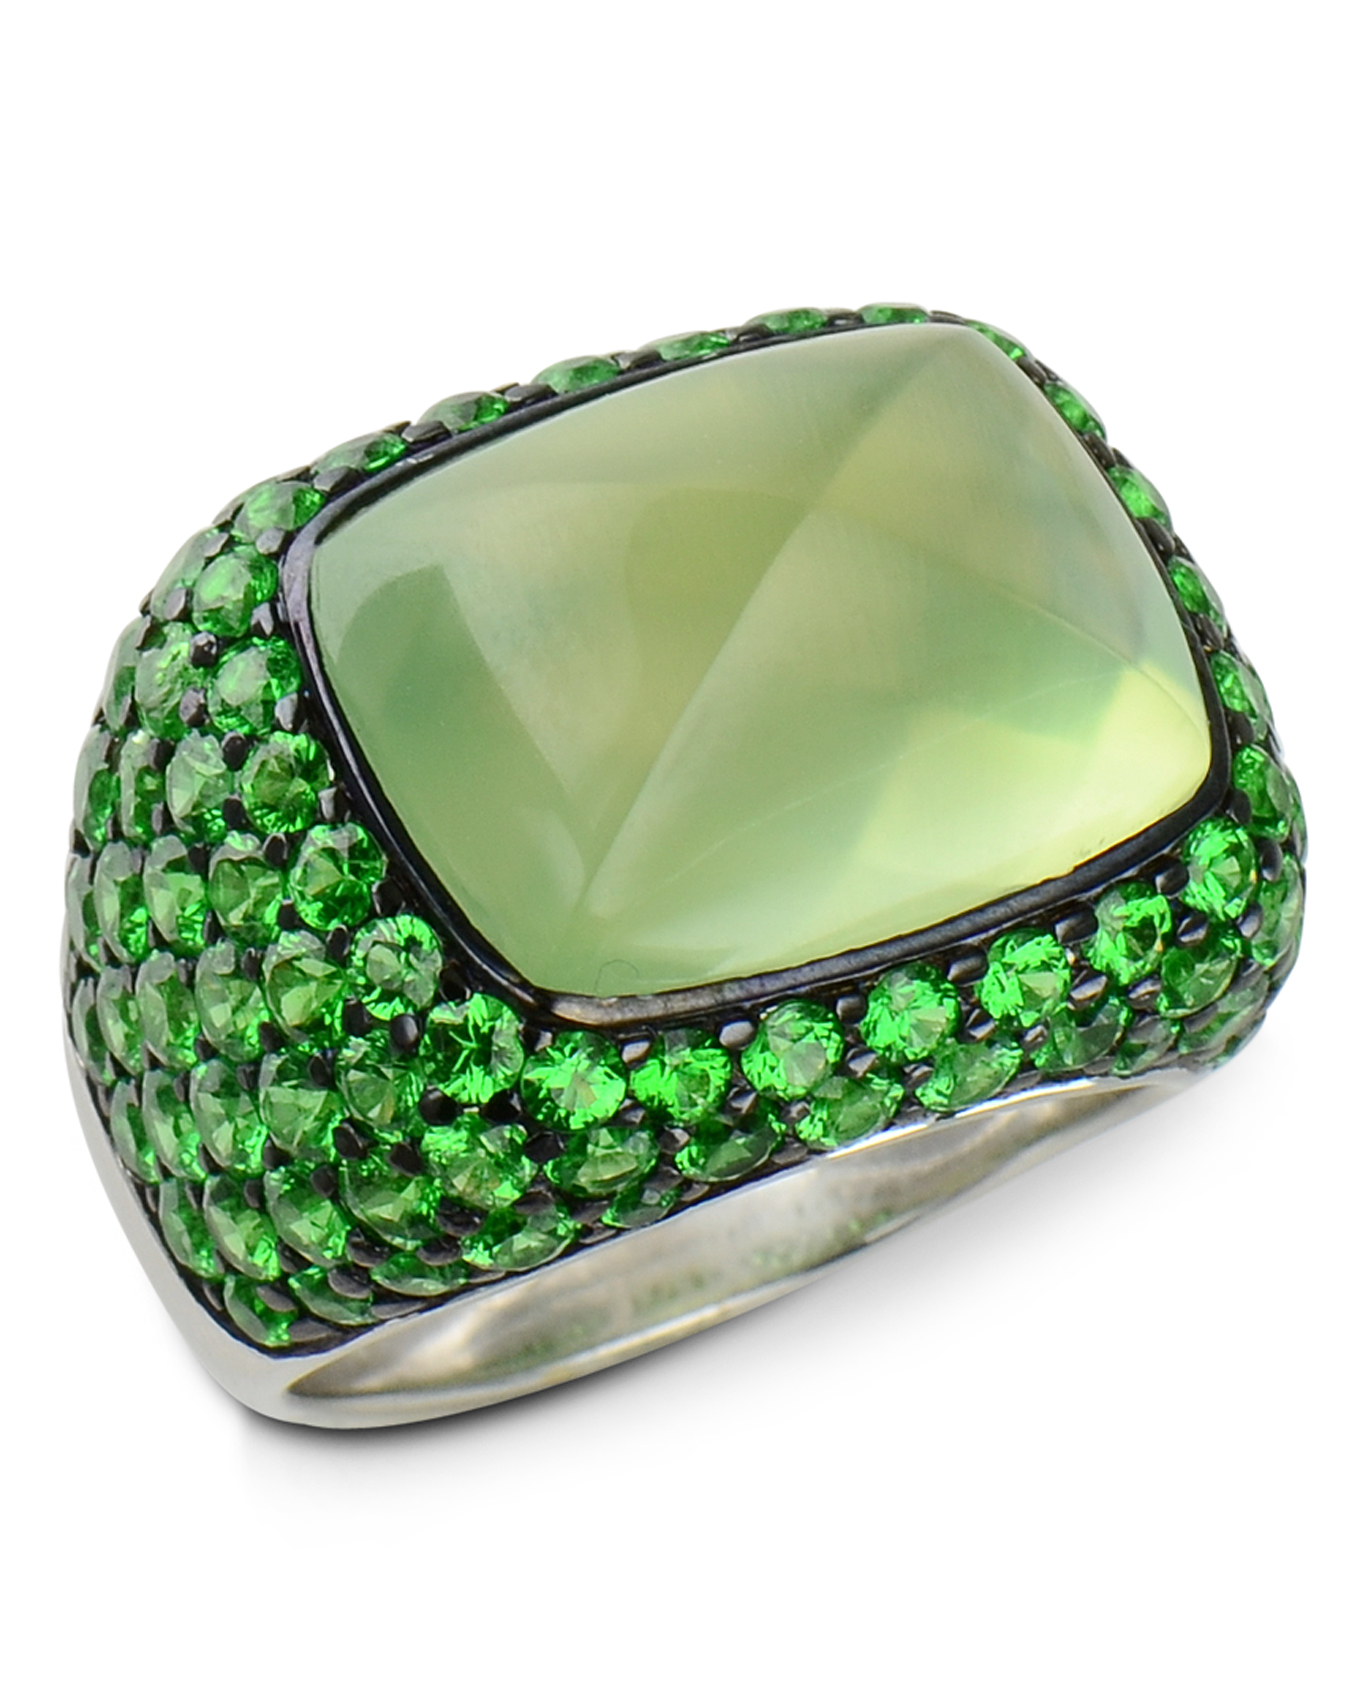 products collectio from rare collection img elizabeth gemstone green virginia and tsavorite simple henry garnet diamond the ring